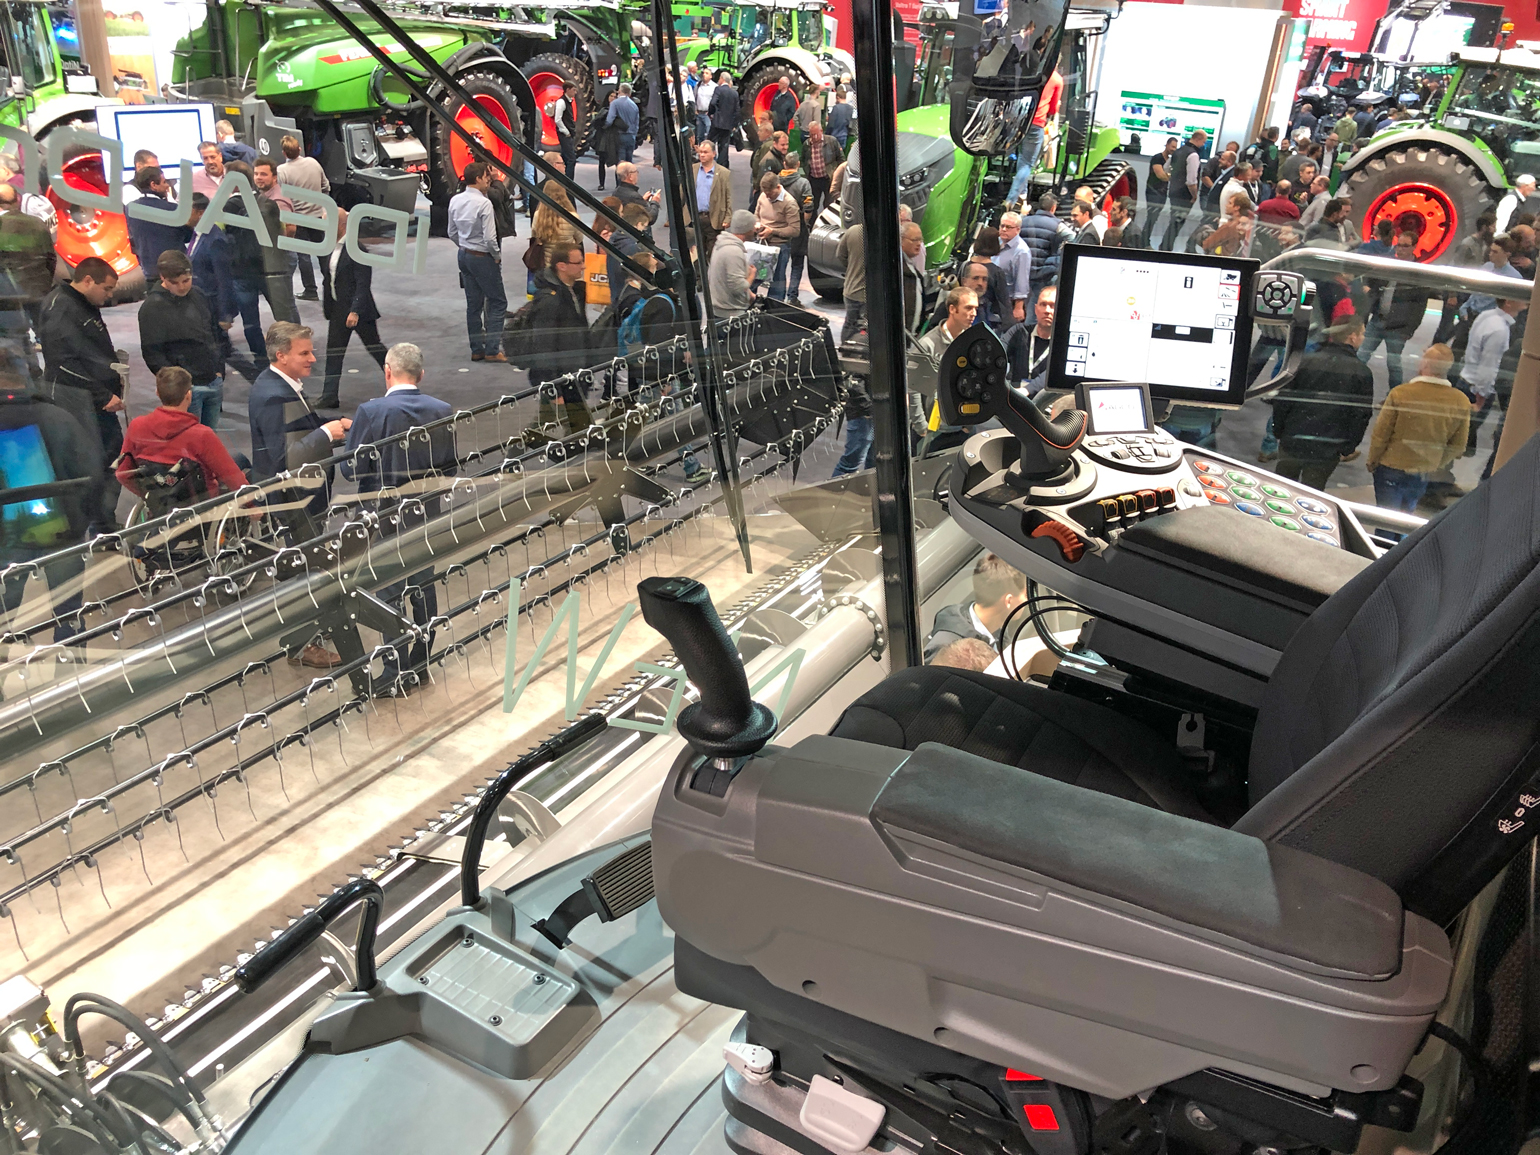 interior of IdealDrive cab from Fendt displayed at Agritechnica